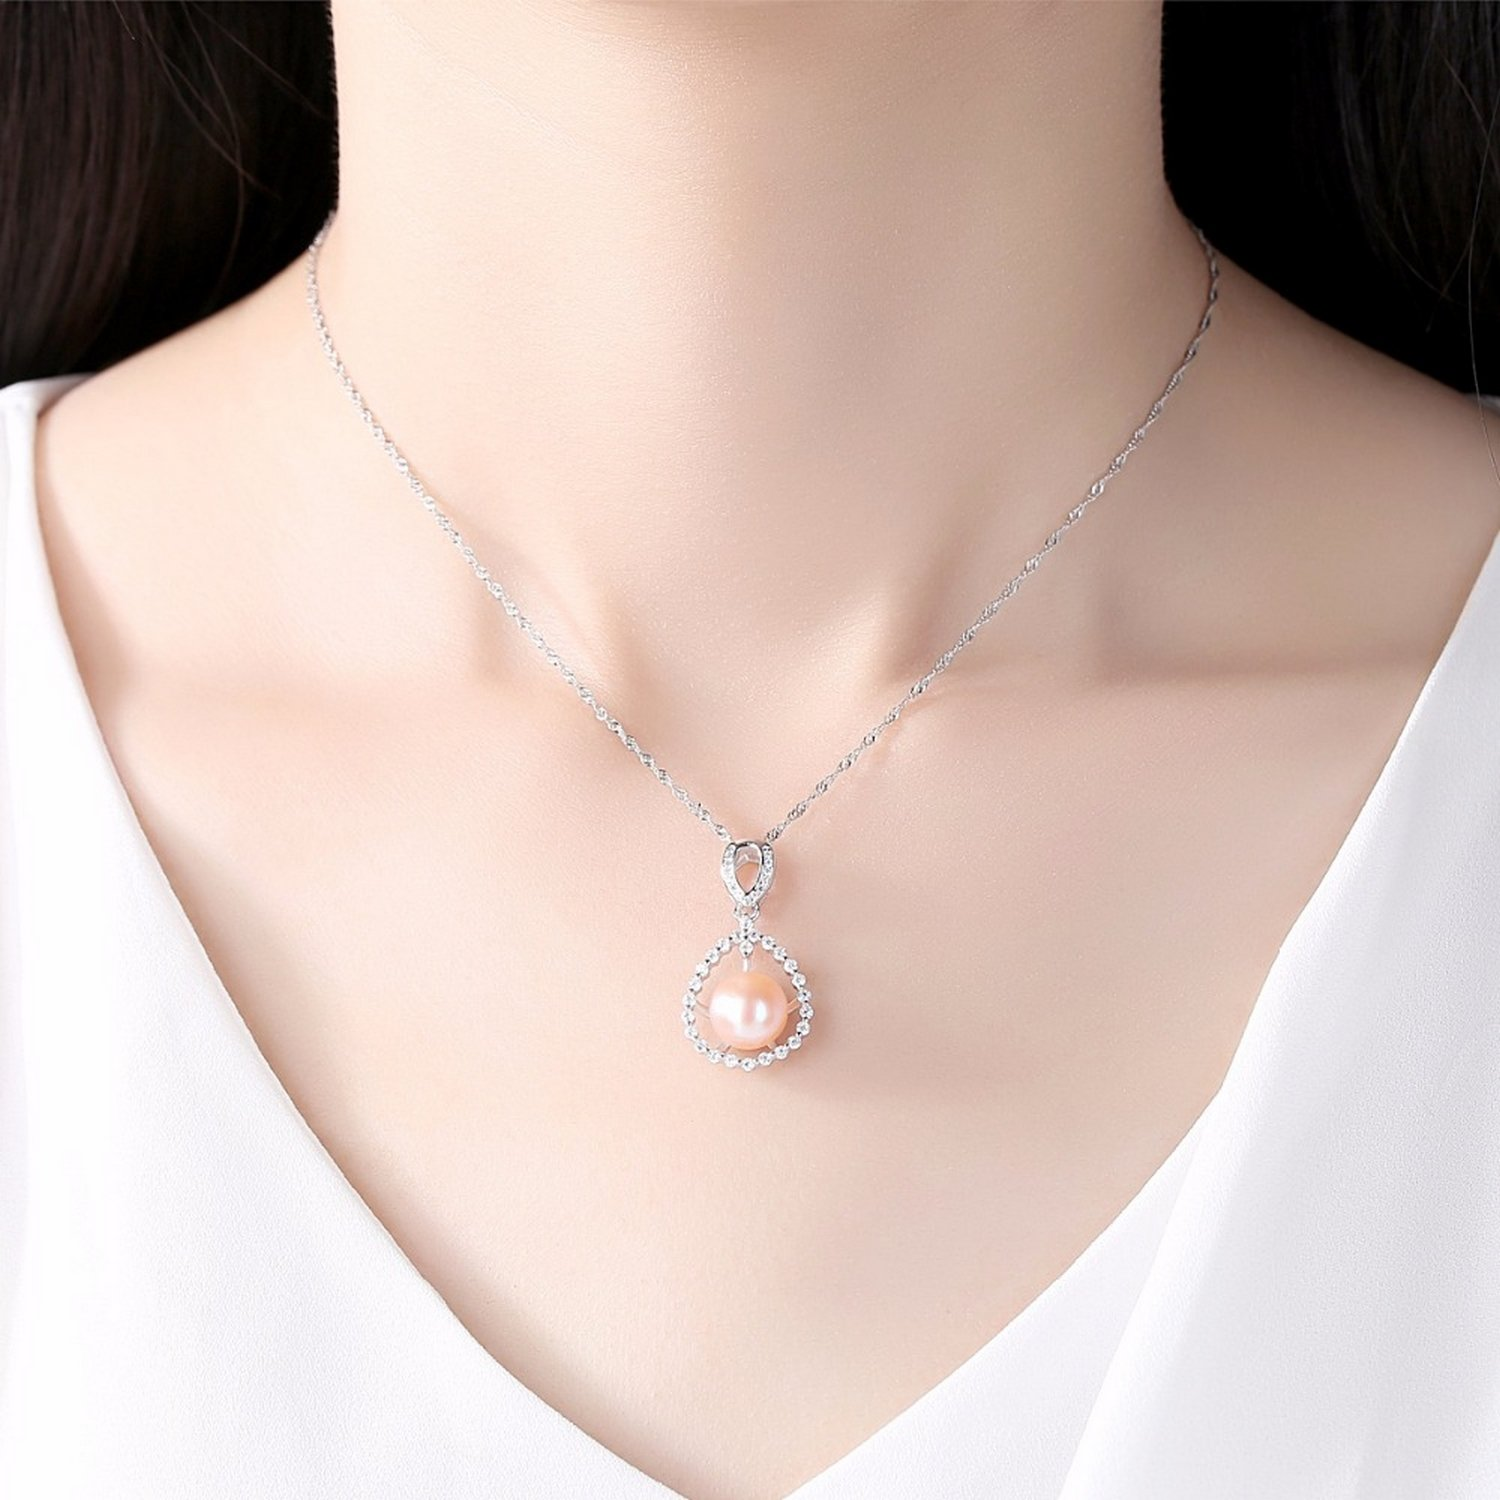 CS-DB Jewelry Silver Wave Drop Water Shape Beads Pearl Chain Charm Pendants Necklaces